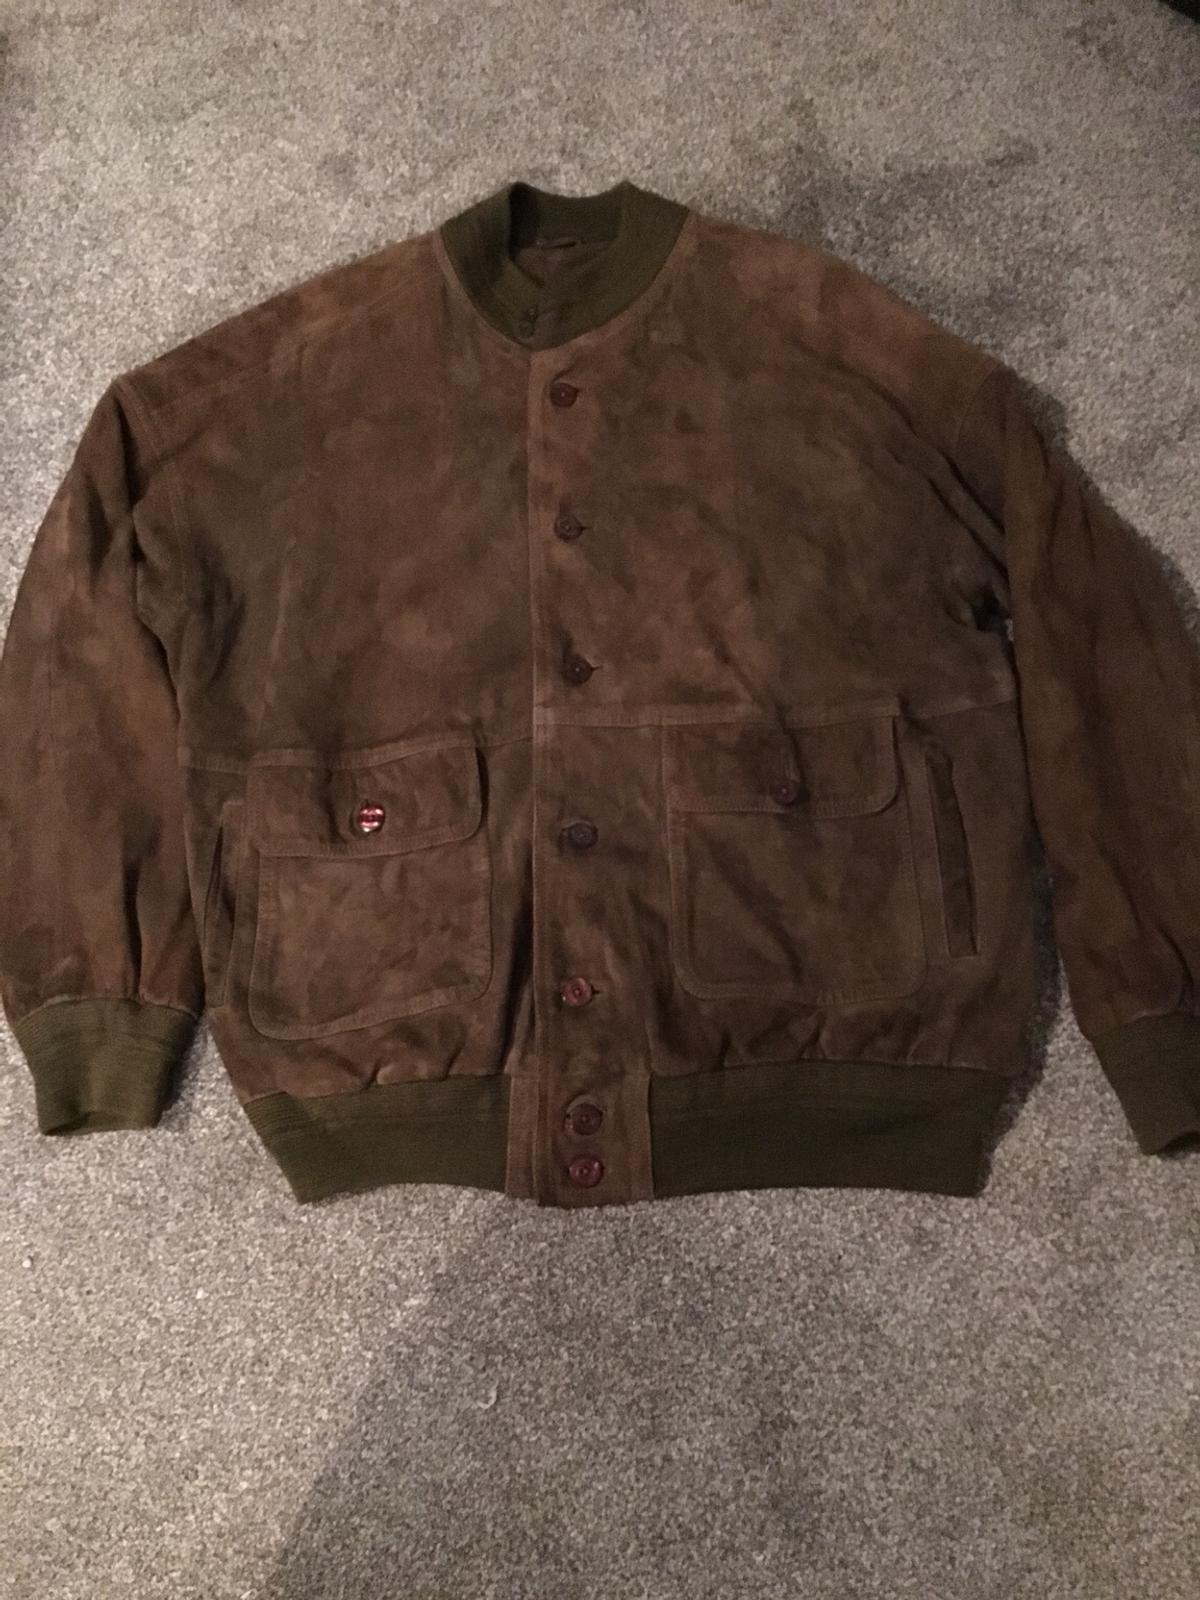 Brilliant men's leather jacket in amazing condition viewing welcome